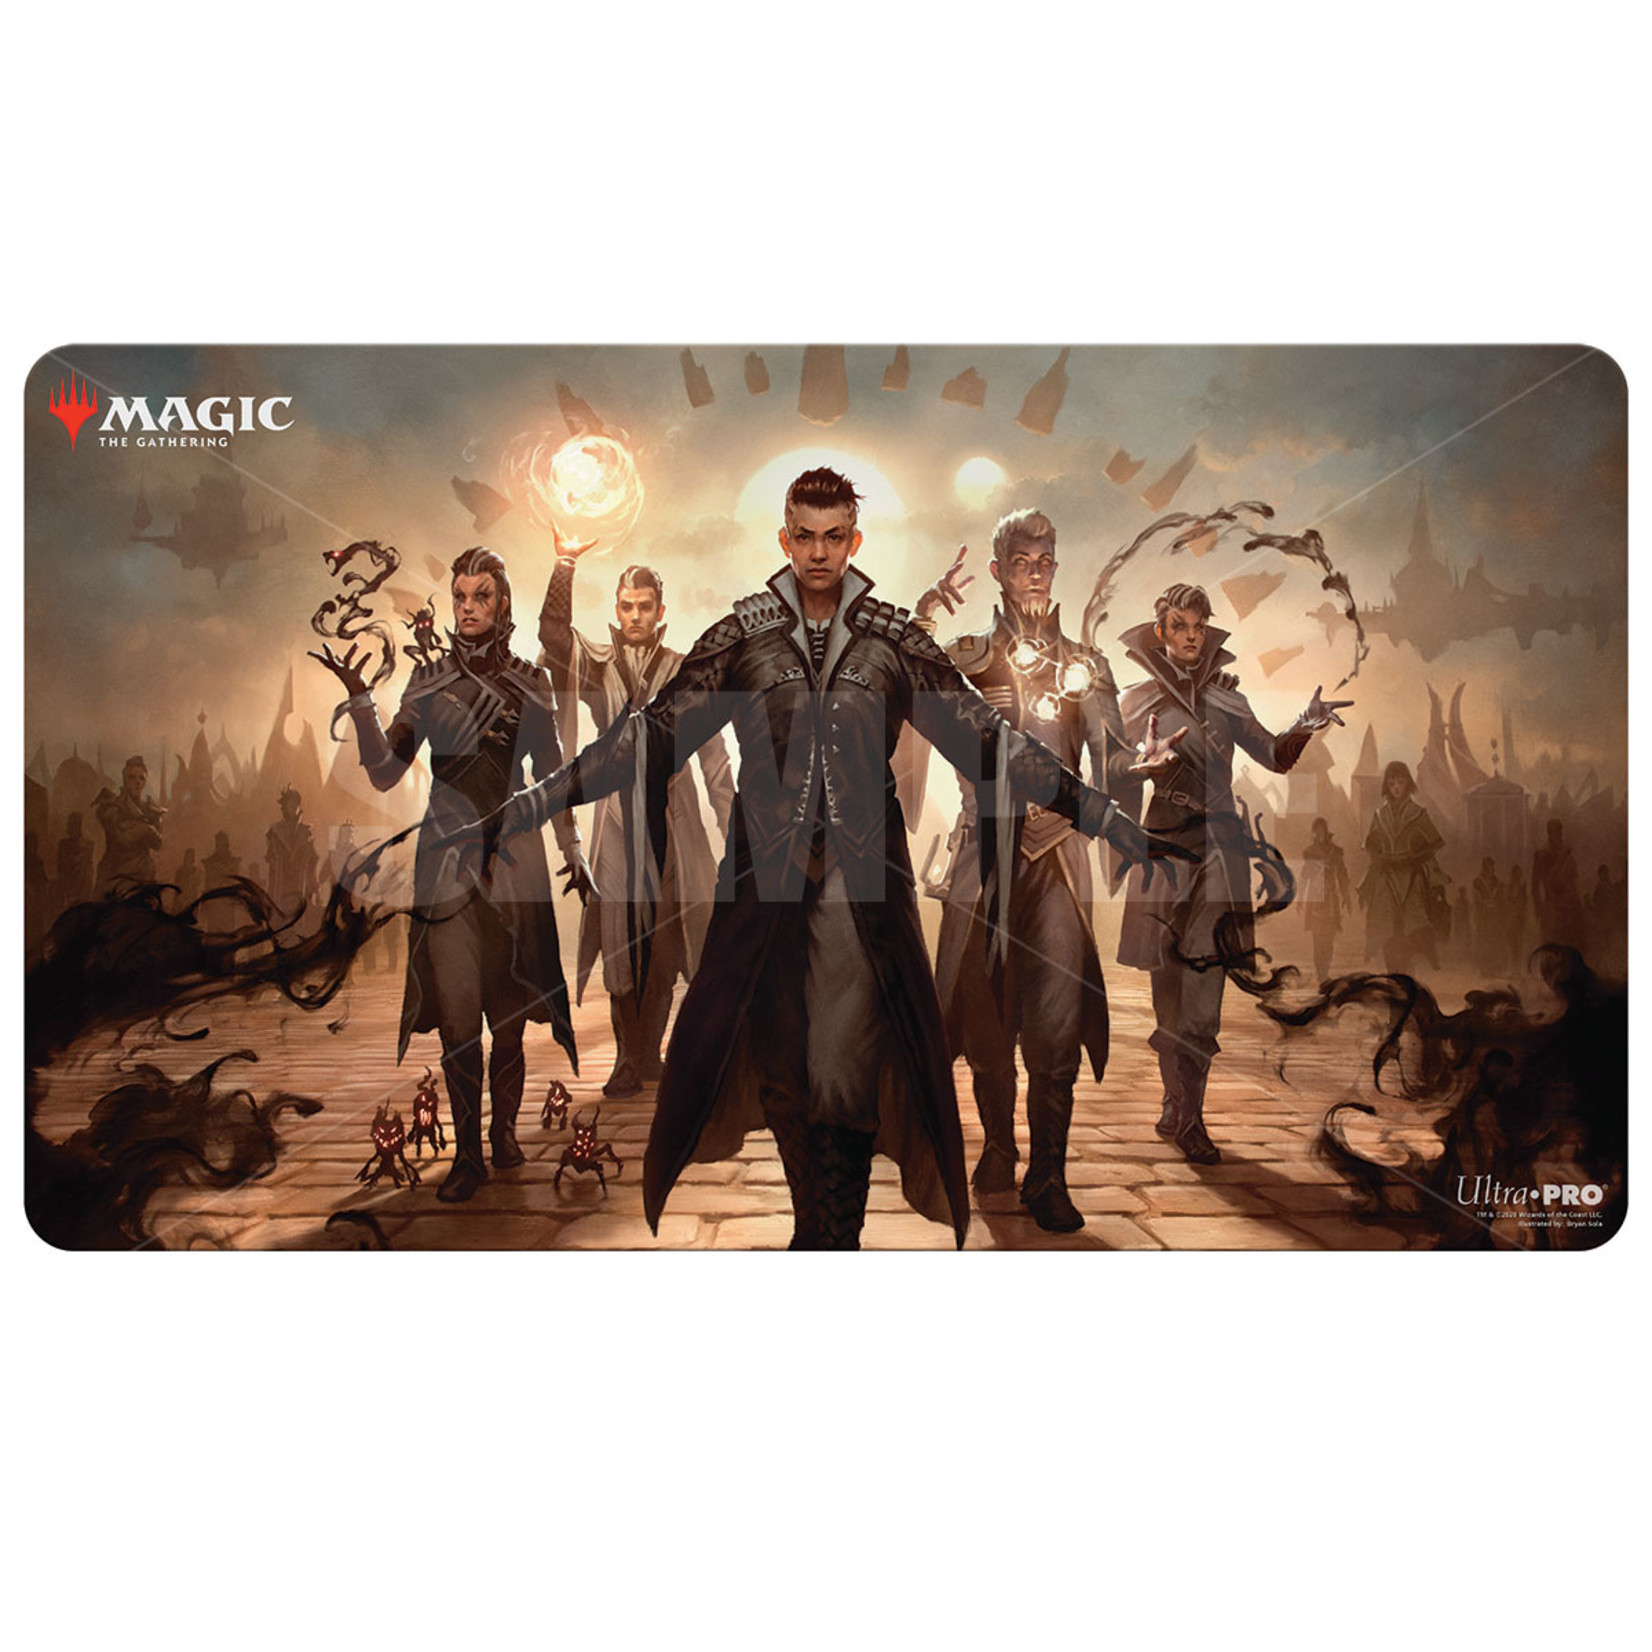 Ultra Pro Magic: The Gathering Strixhaven Silverquill Command Playmat